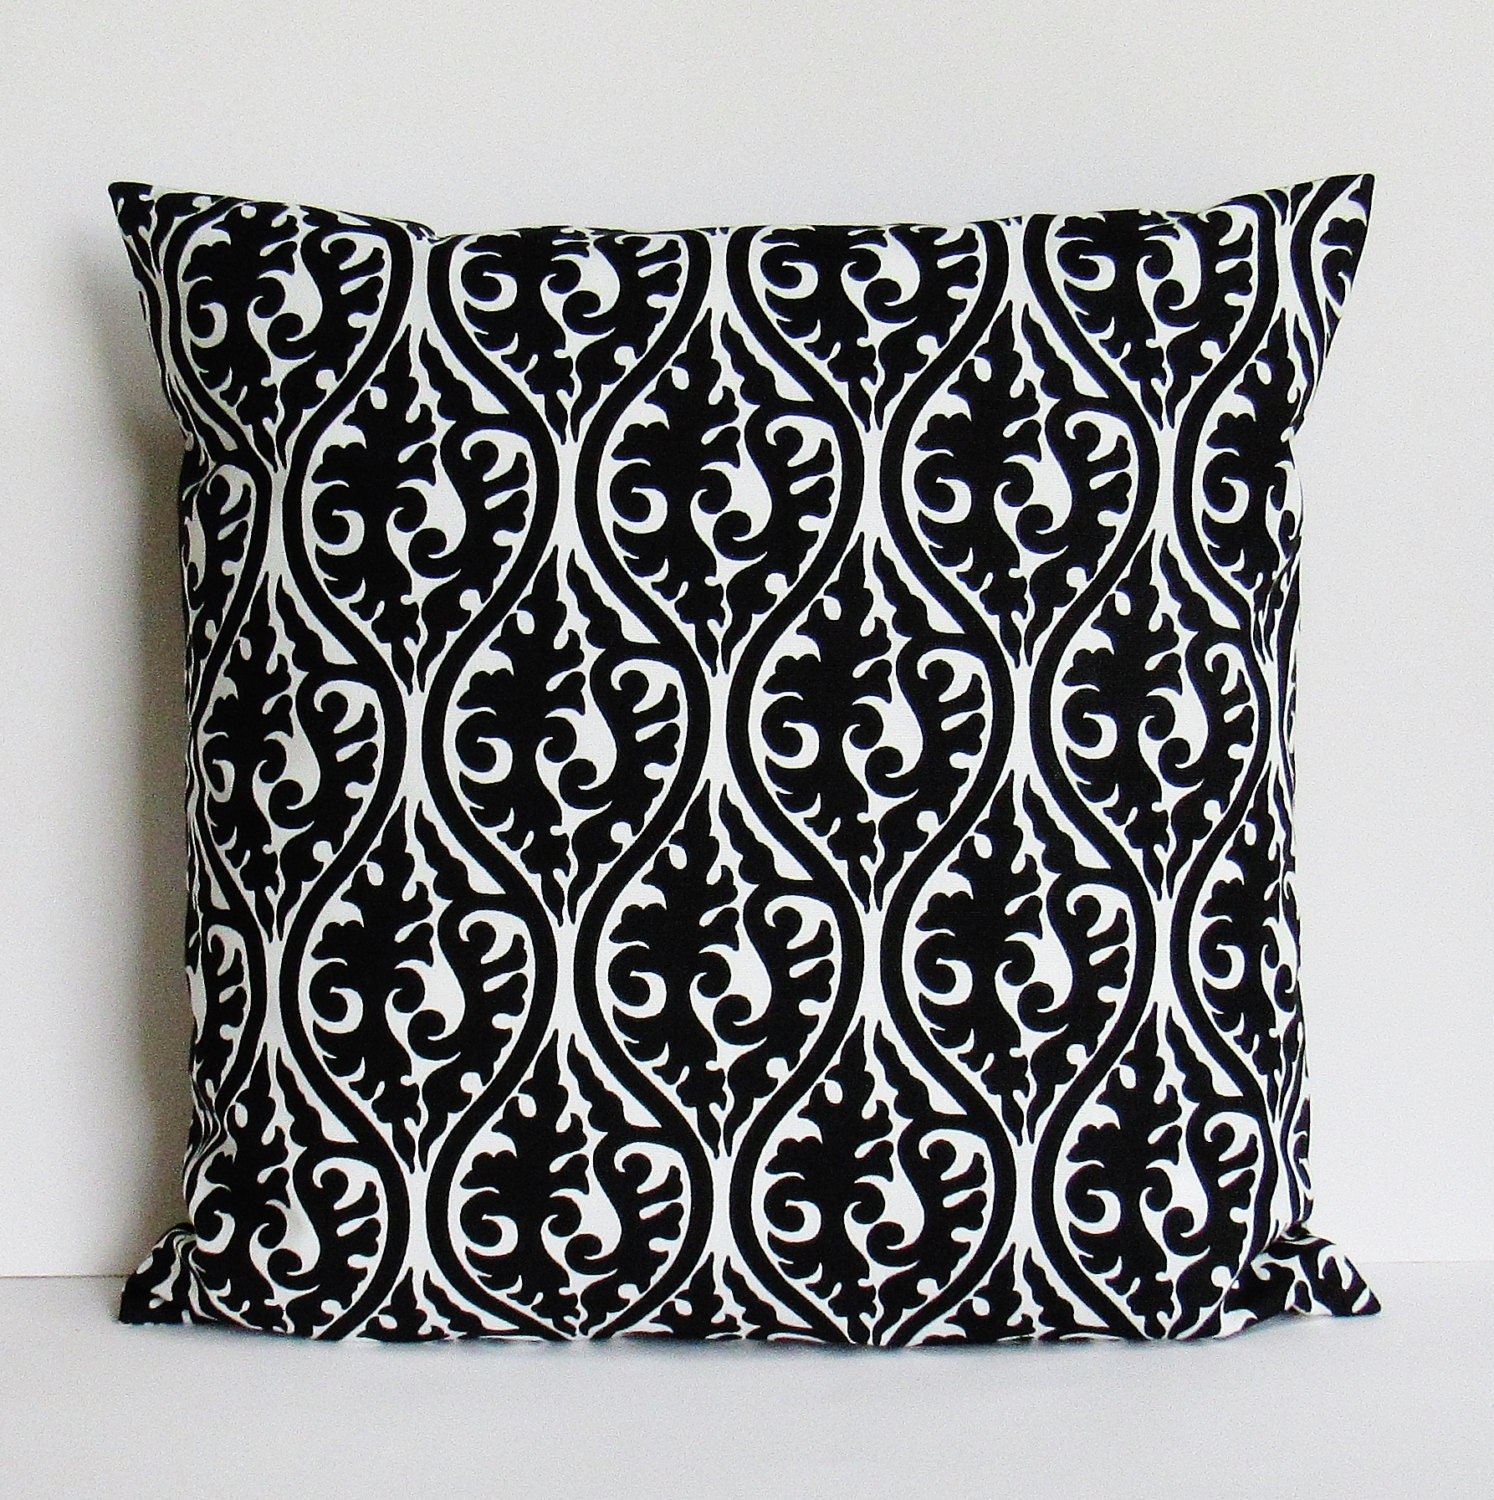 Black Throw Pillow Cover Geometric Decorative Accent Sofa Bed